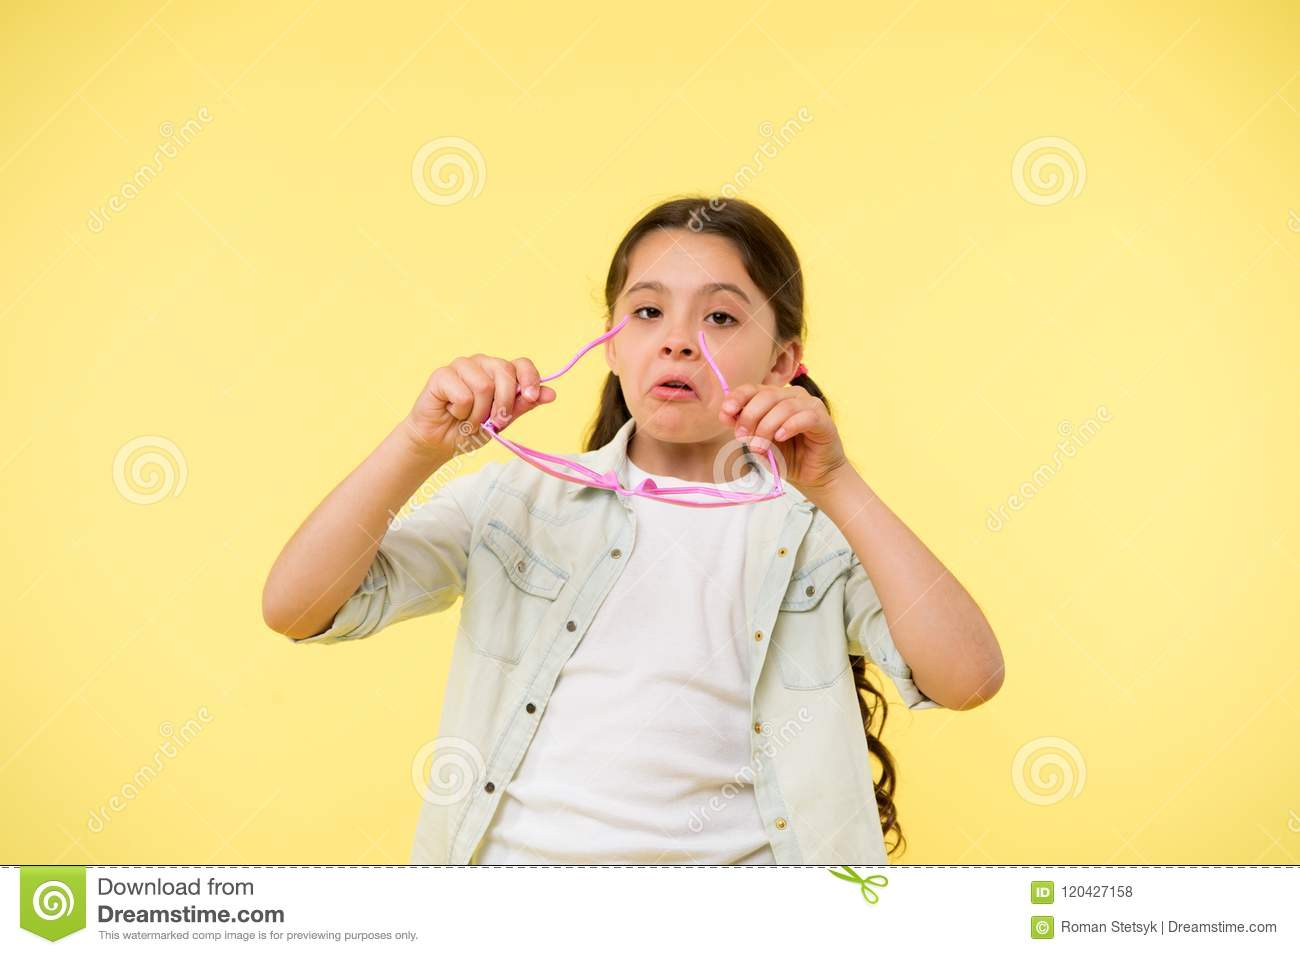 Let me see. Kid girl puts heart shaped eyeglasses. Girl serious face putting glasses on. Child serious holds eyeglasses